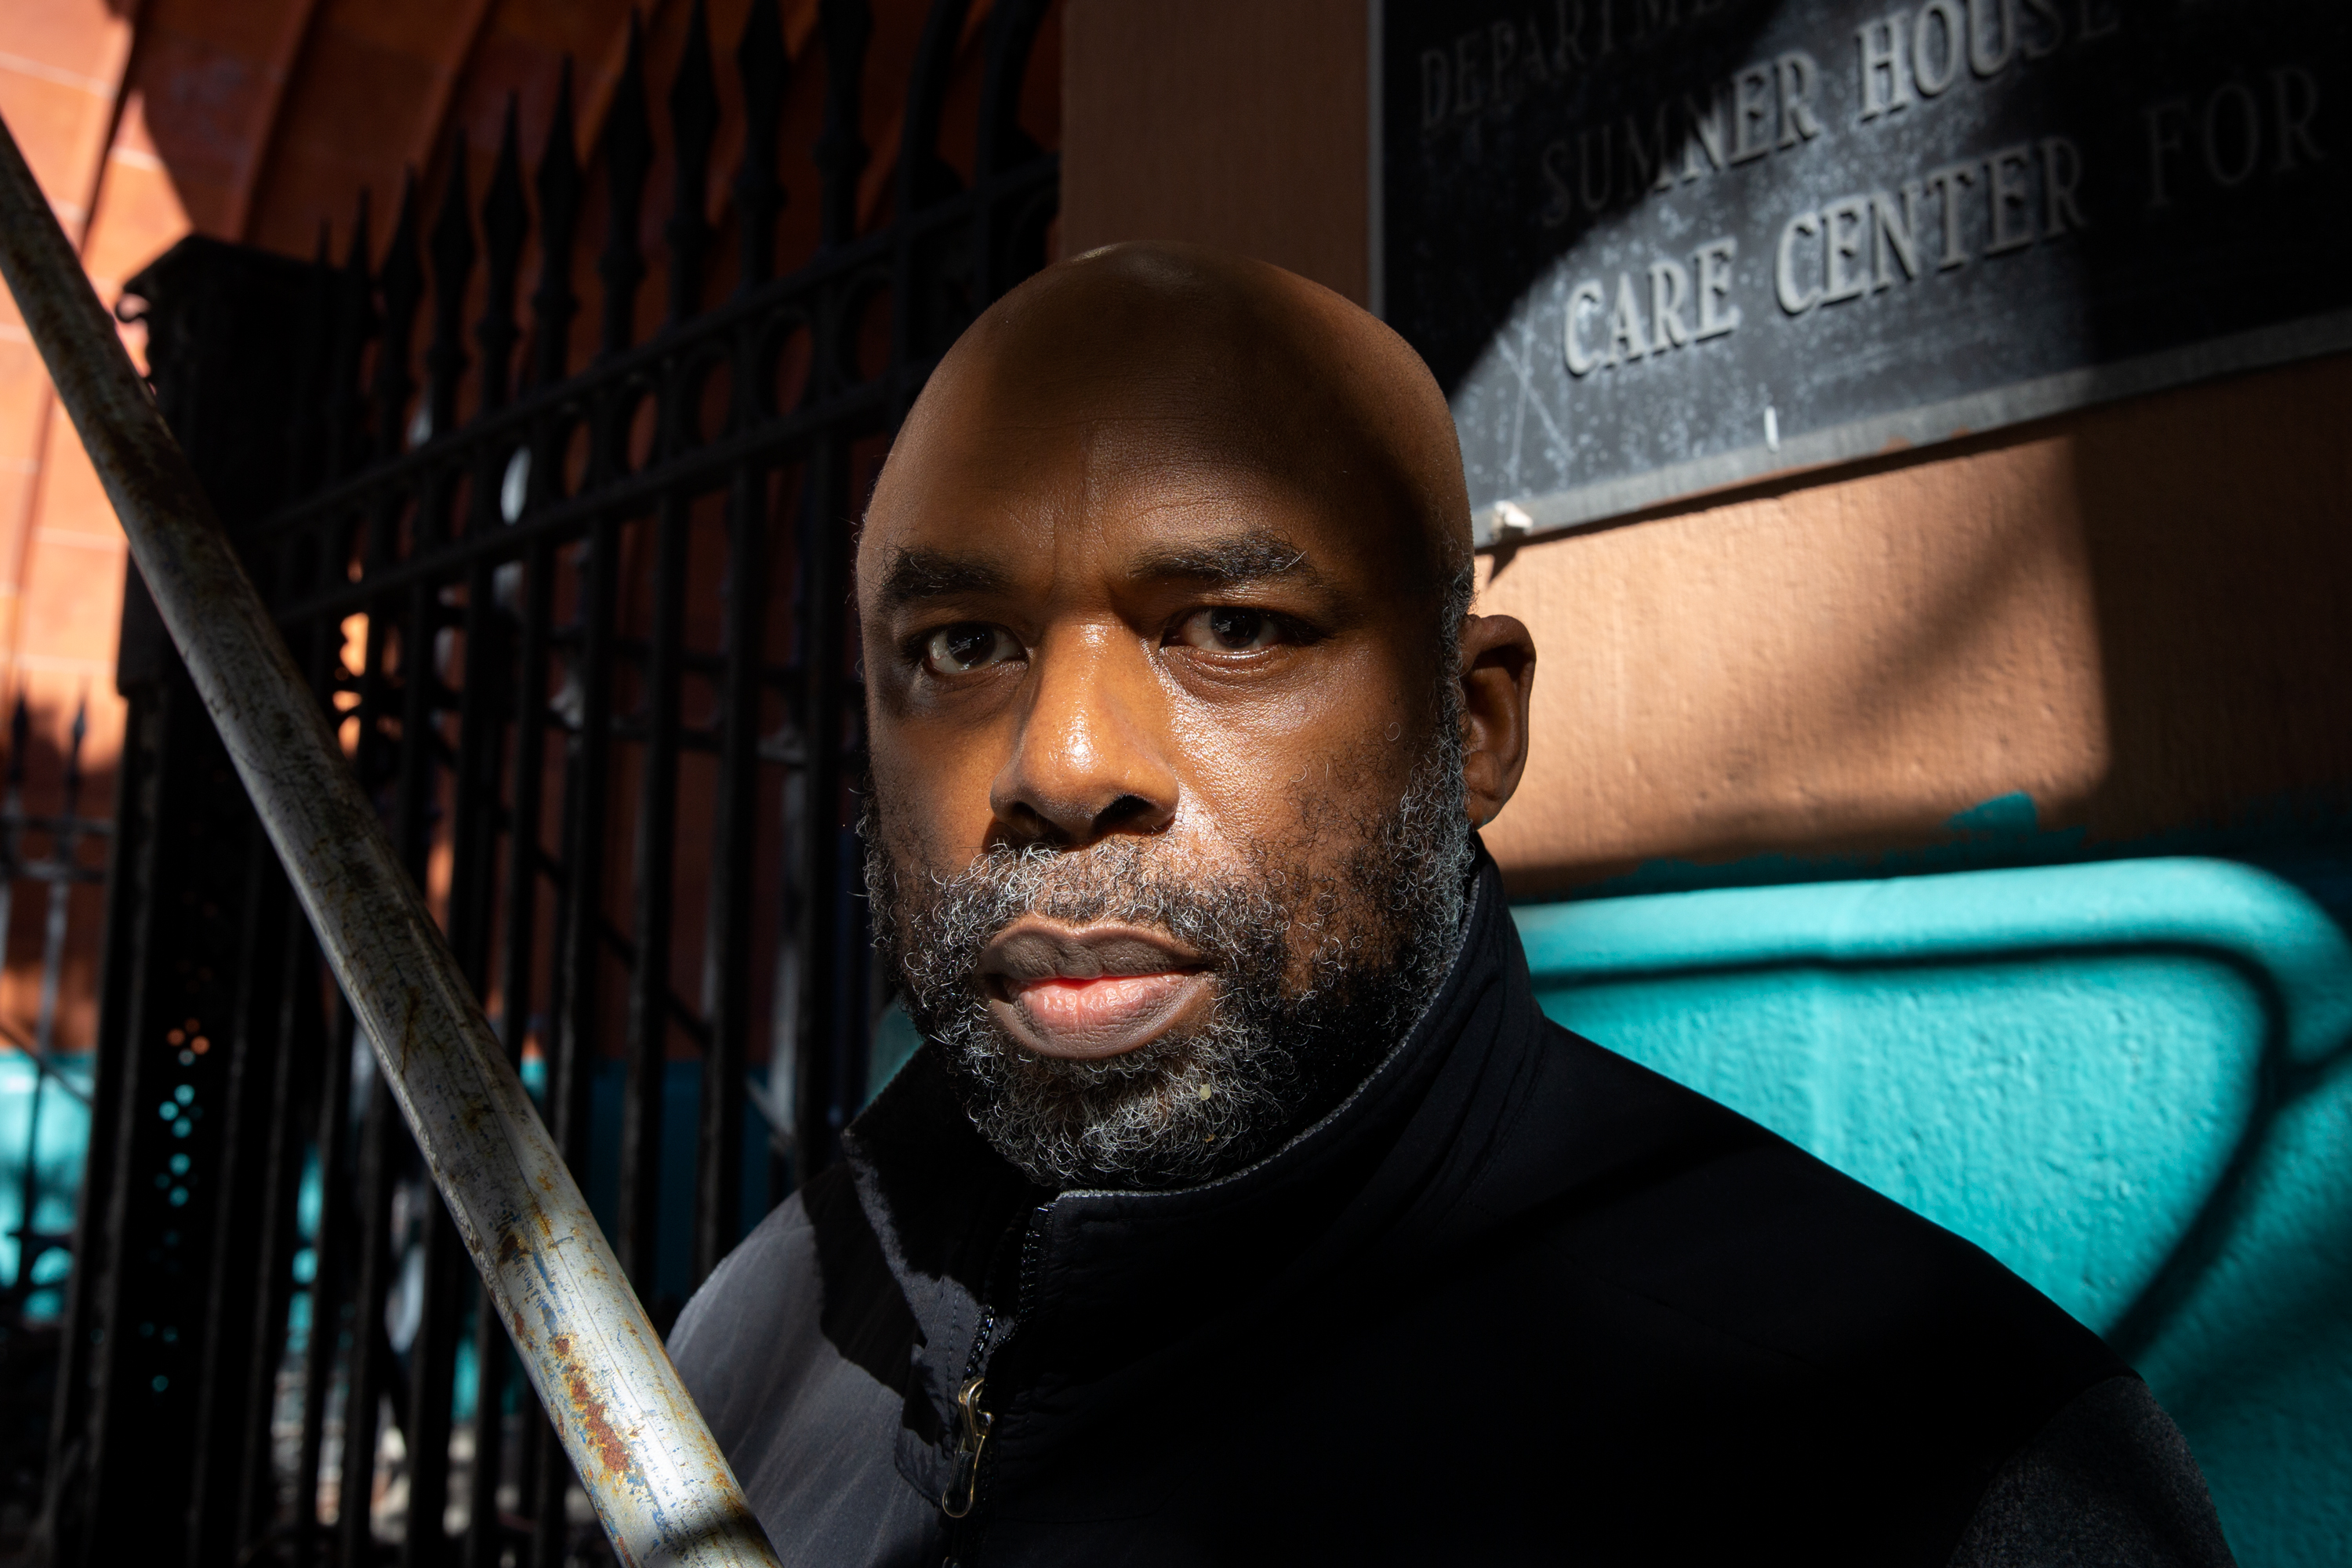 Musician Wayne Batchelor has been staying at a Bed-Stuy shelter, Oct. 19, 2021.